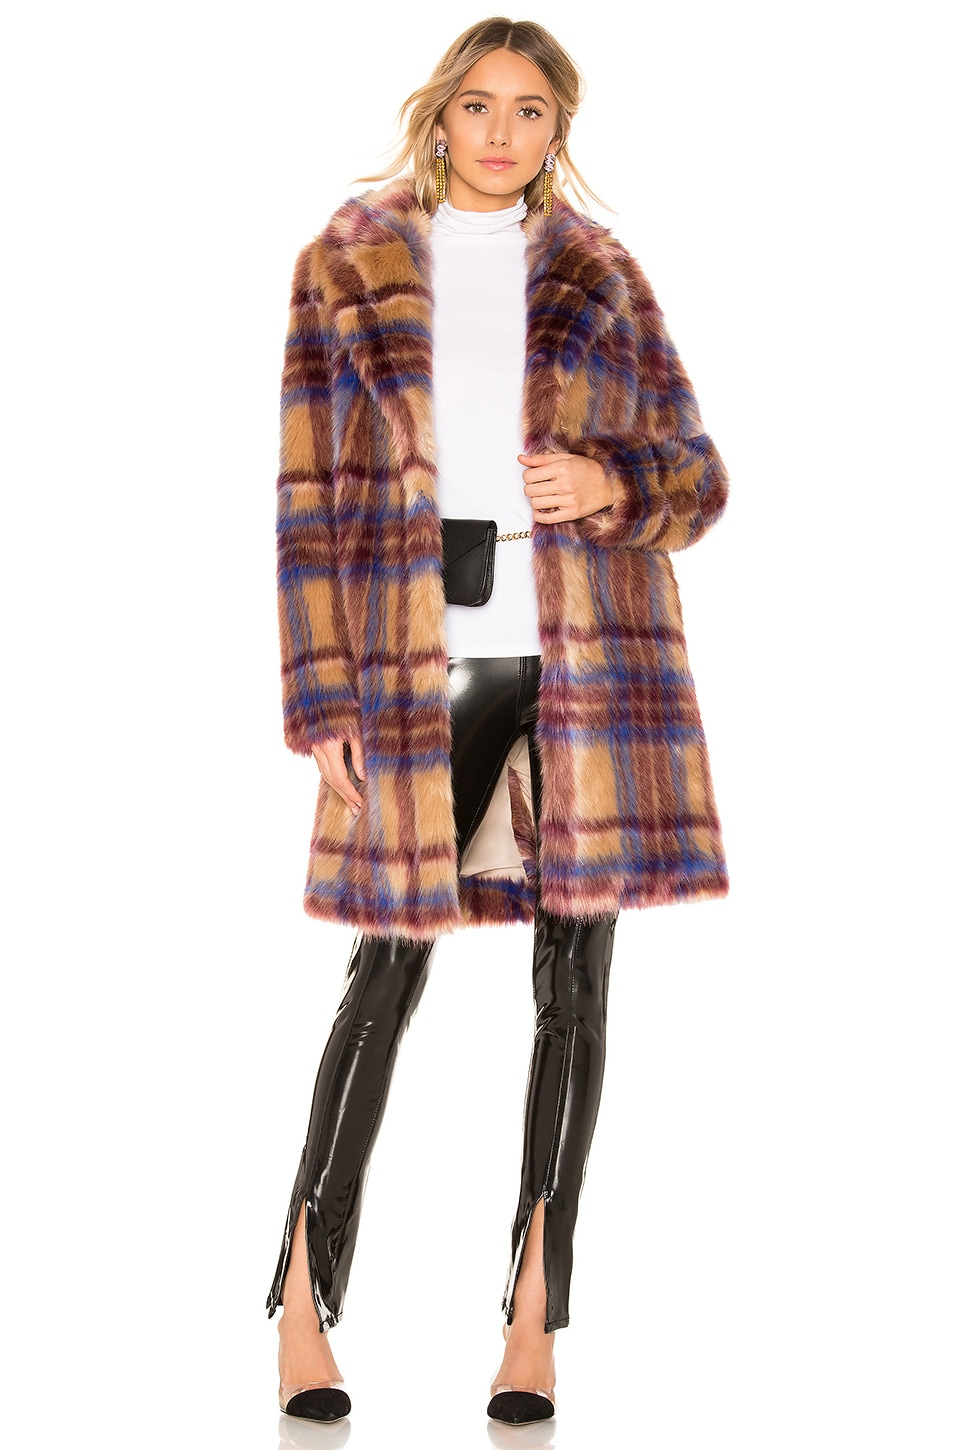 MAJORELLE Fifi Coat in Multi